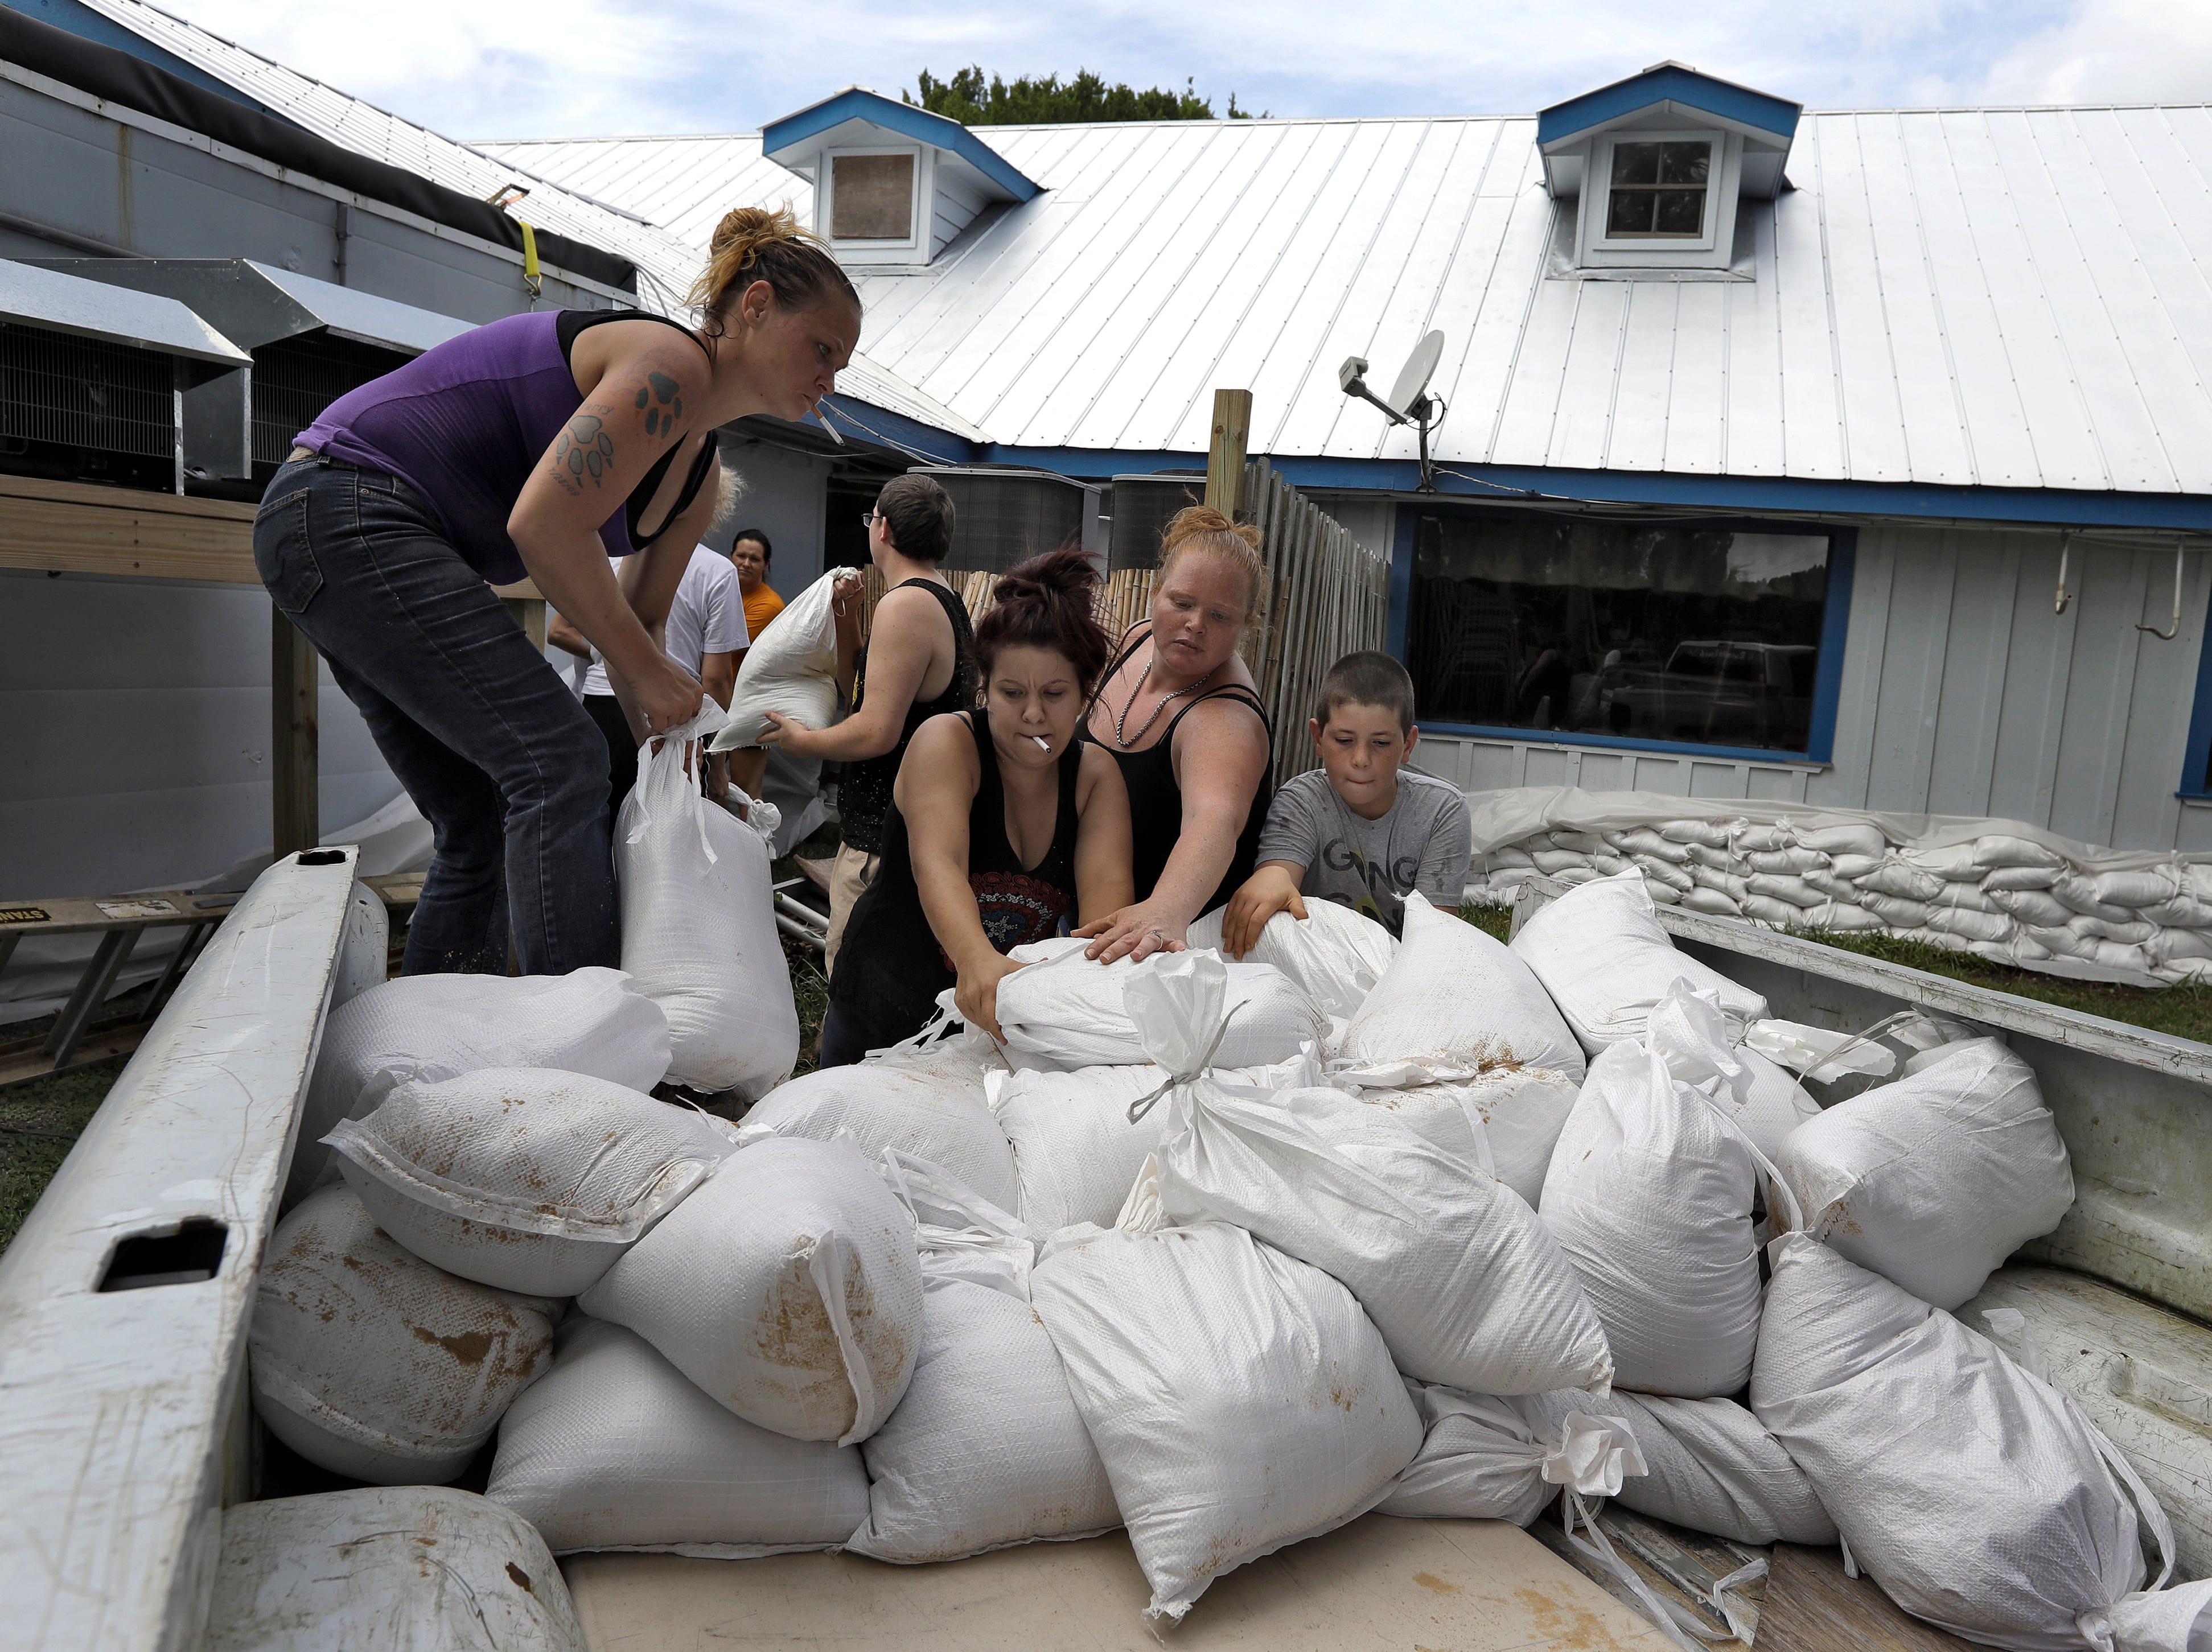 Krystal Day, of Homosassa, Fla., left, leads a sandbag assembly line at the Old Port Cove restaurant Tuesday, Oct. 9, 2018, in Ozello, Fla. Employees were hoping to protect the restaurant from floodwaters as Hurricane Michael continues to churn in the Gulf of Mexico heading for the Florida panhandle.